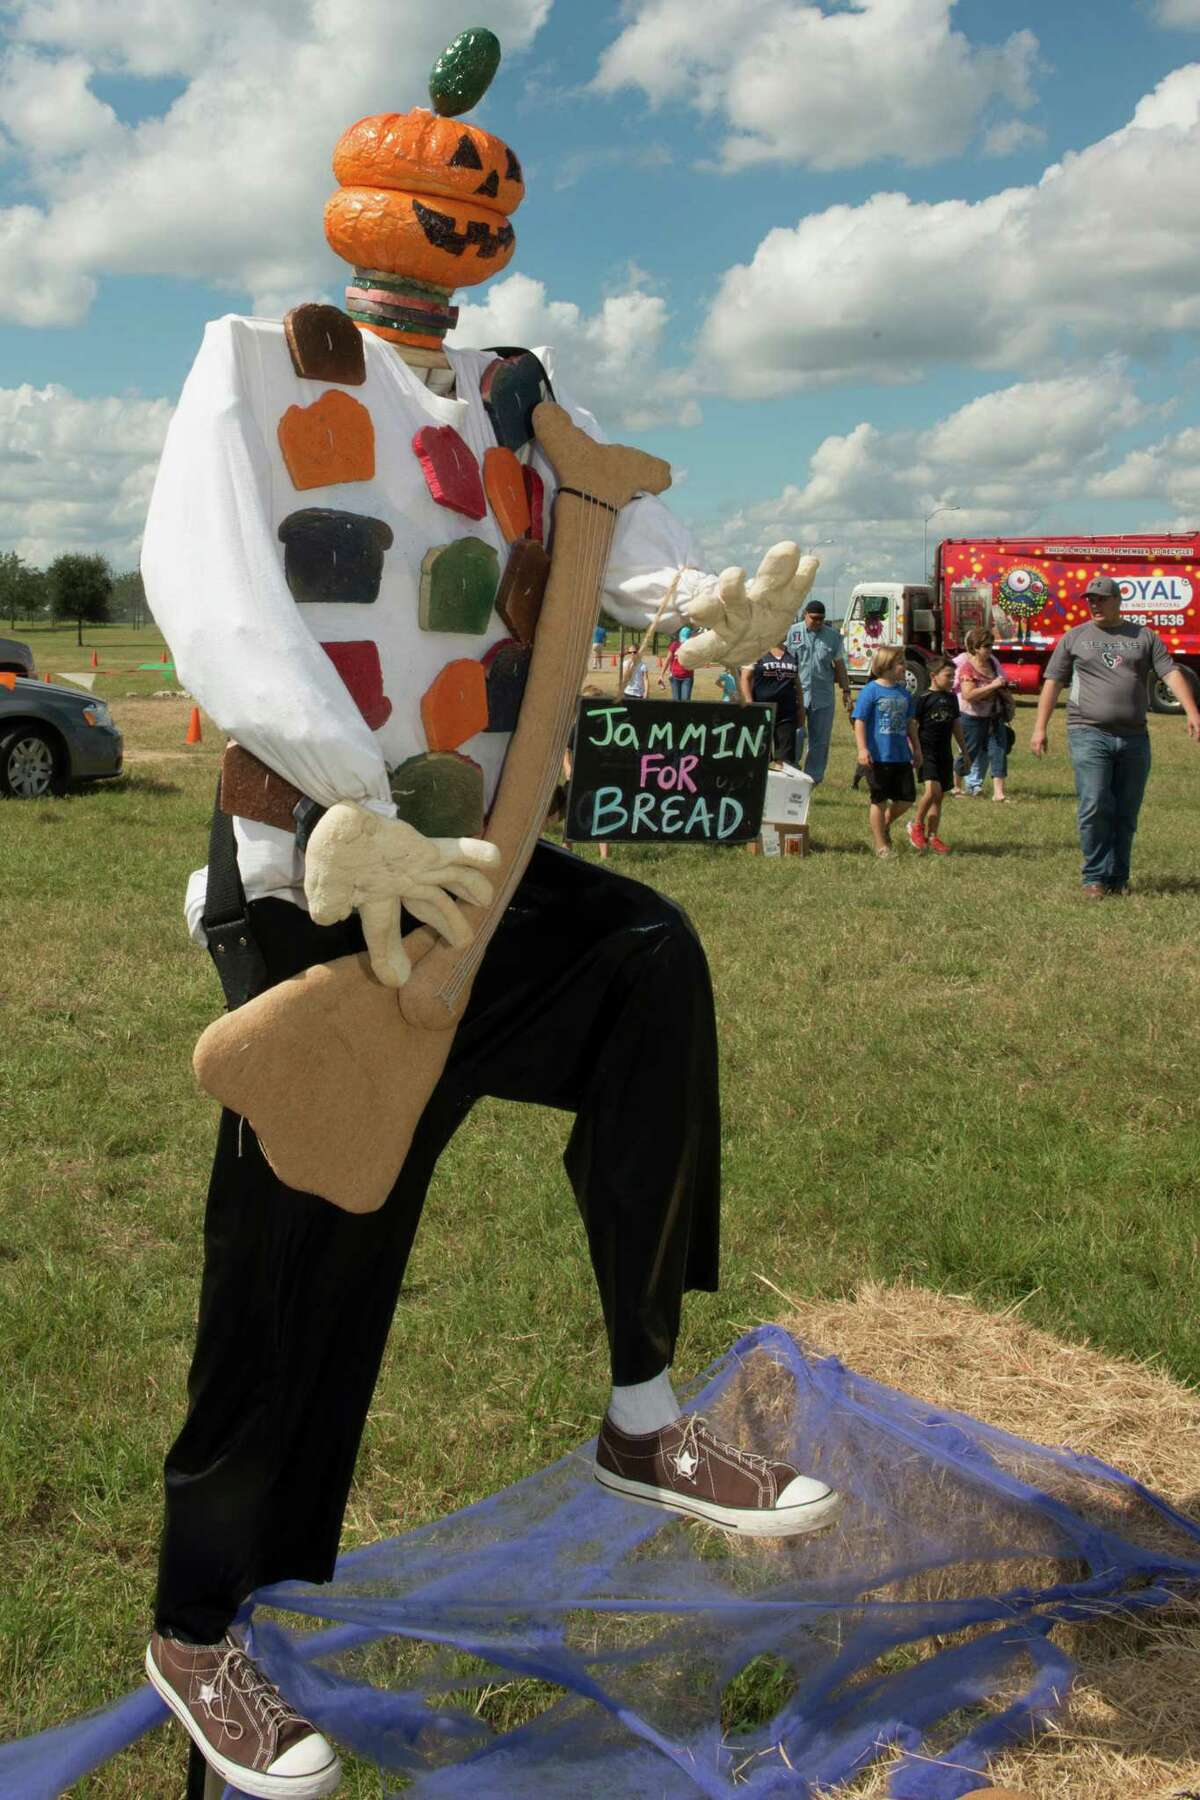 The Fulshear Scarecrow Festival returns to Cross Creek Ranch 11 a.m. to 4 p.m. Saturday, Oct. 17. This year's theme is